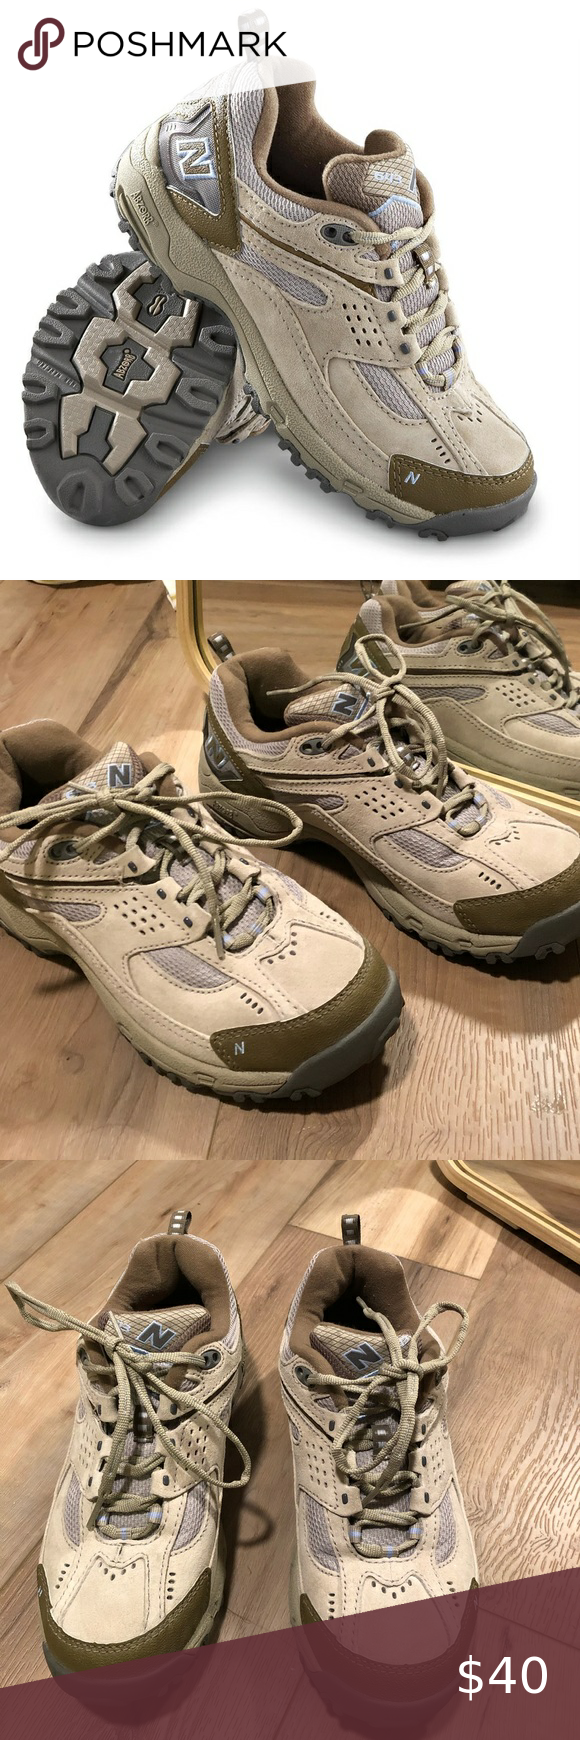 Hiking sneakers, New balance shoes